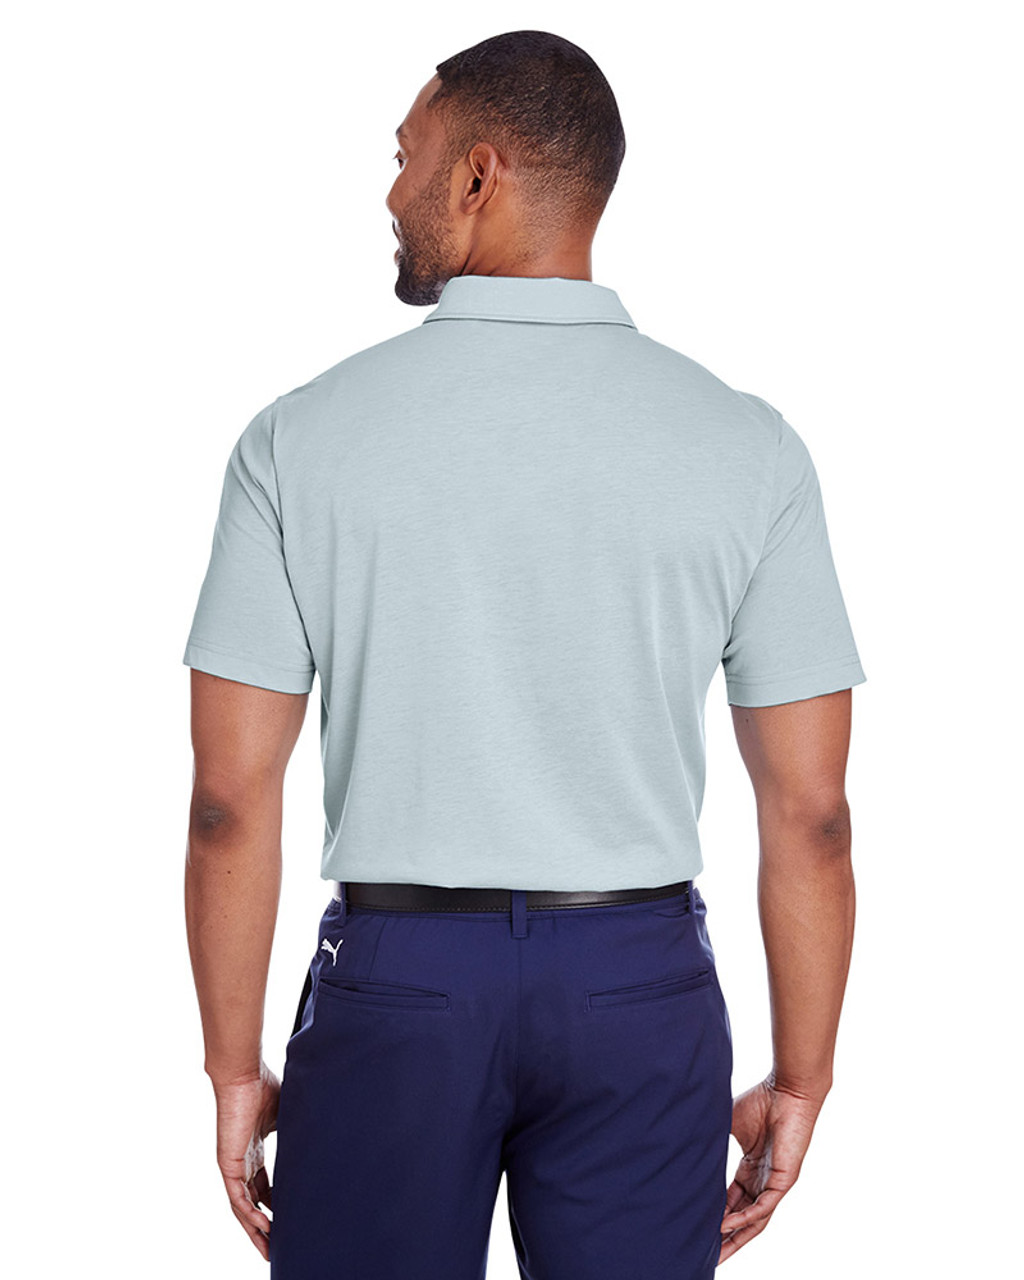 Quarry - back, 596920 Puma Golf Men's Fusion Polo | Blankclothing.ca